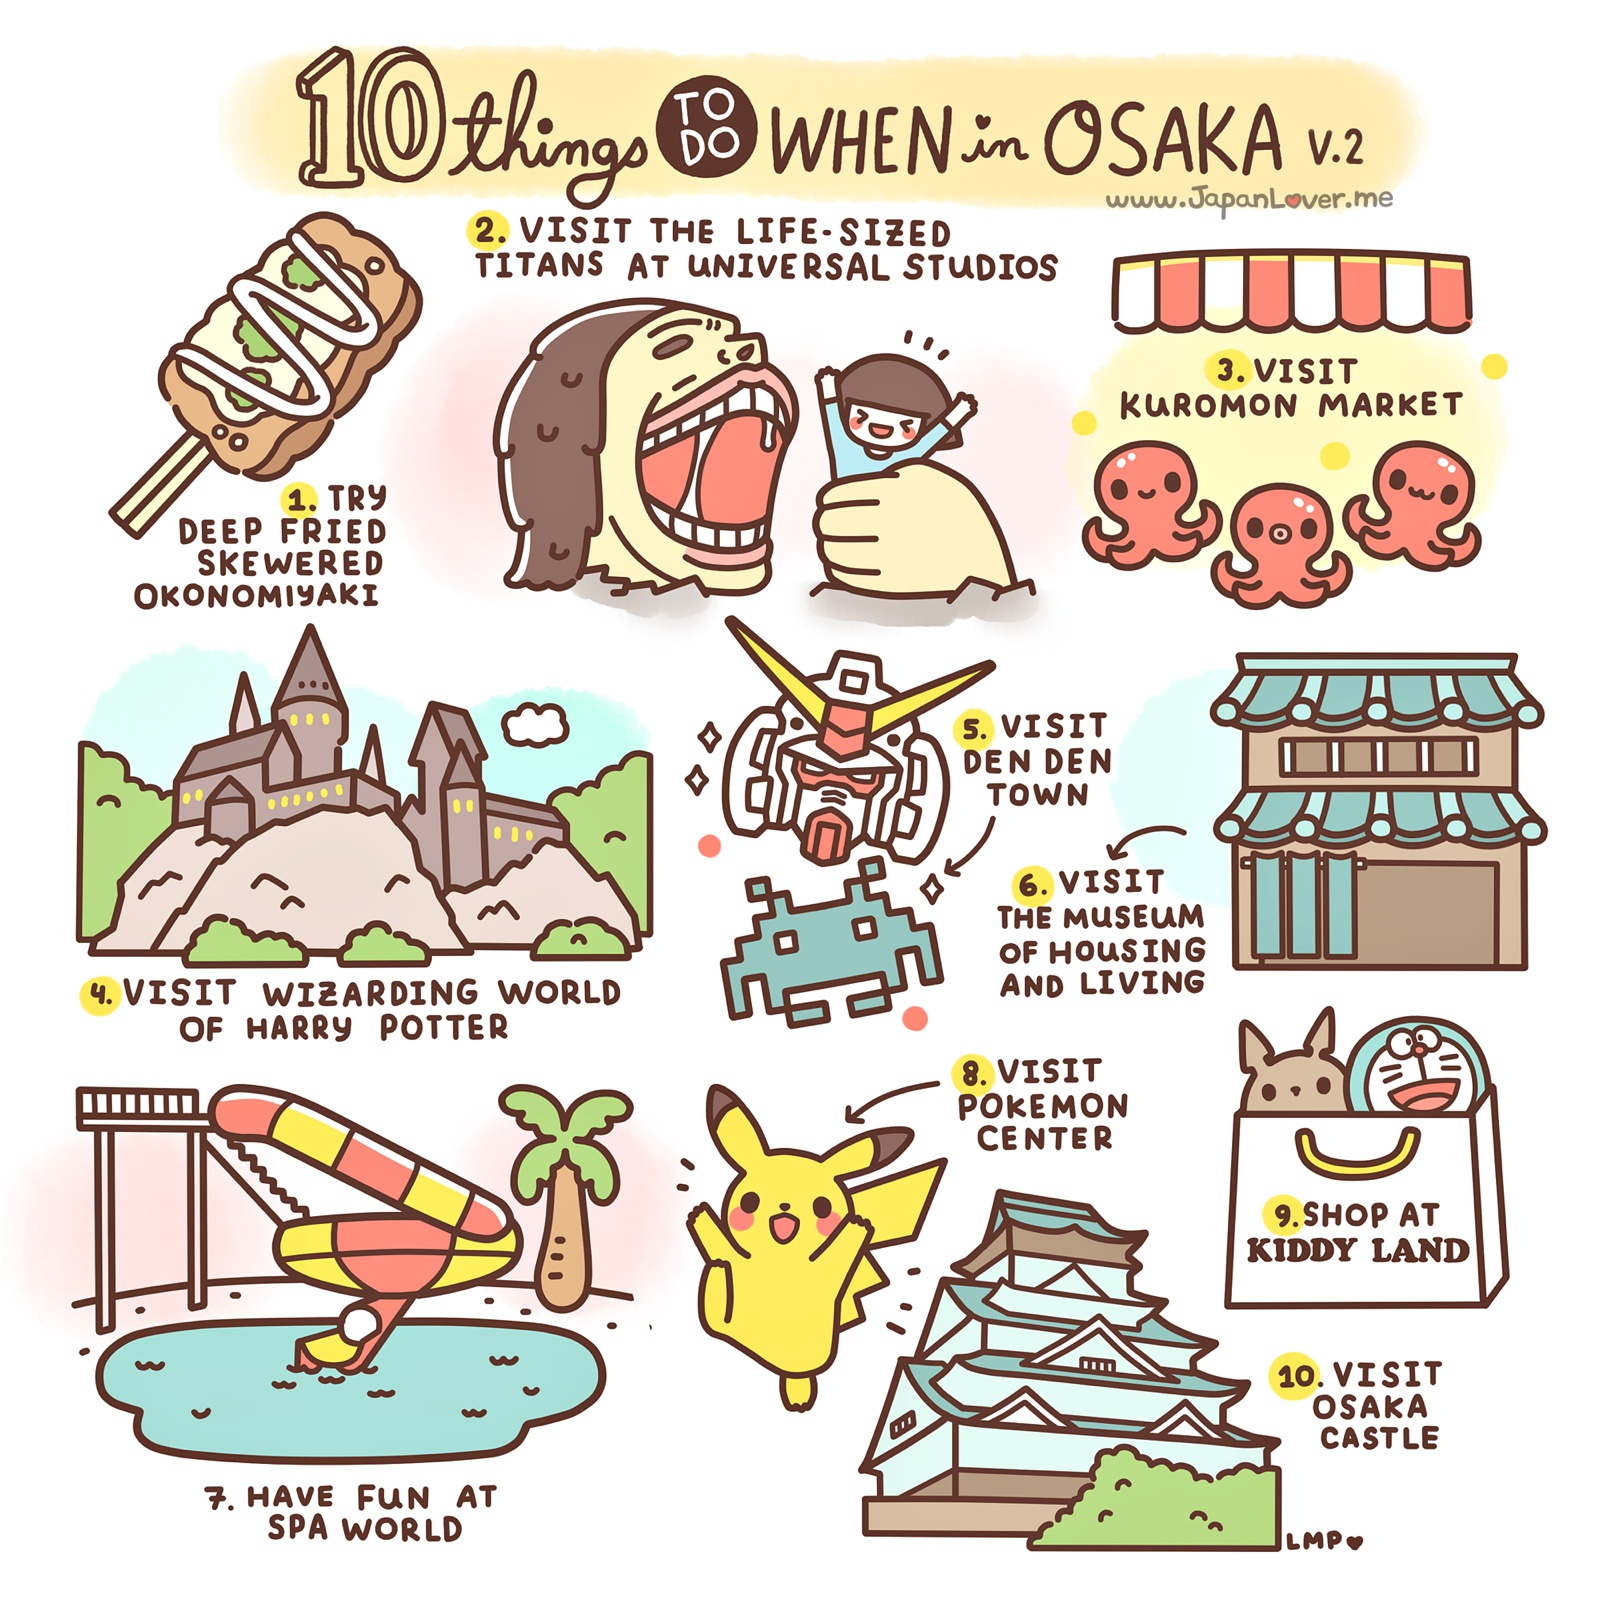 10 Things To Do In Osaka, Japan